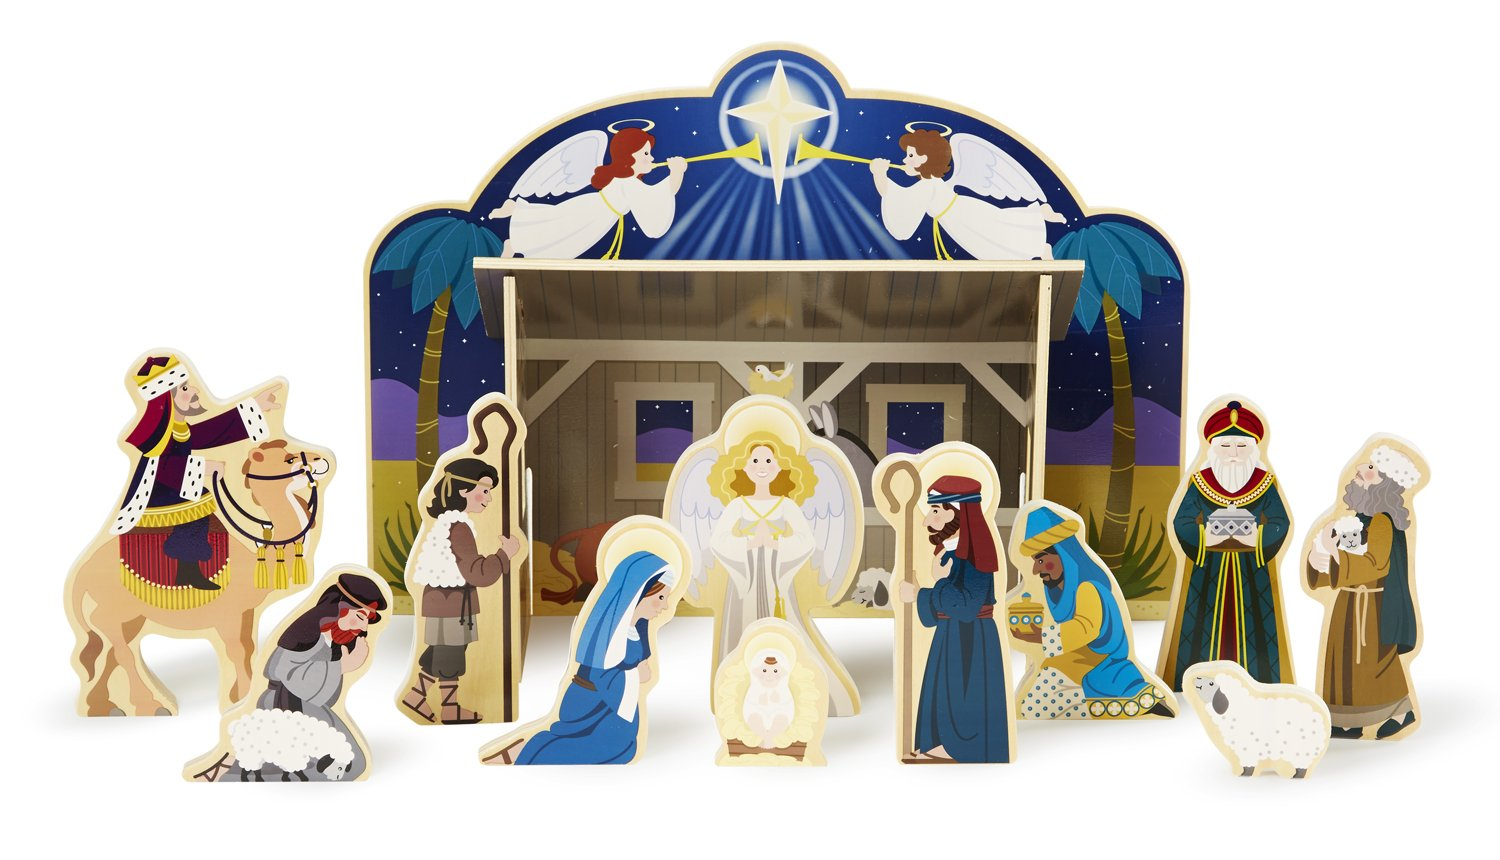 Melissa & Doug Nativity Set for kids children Christmas gift ideas